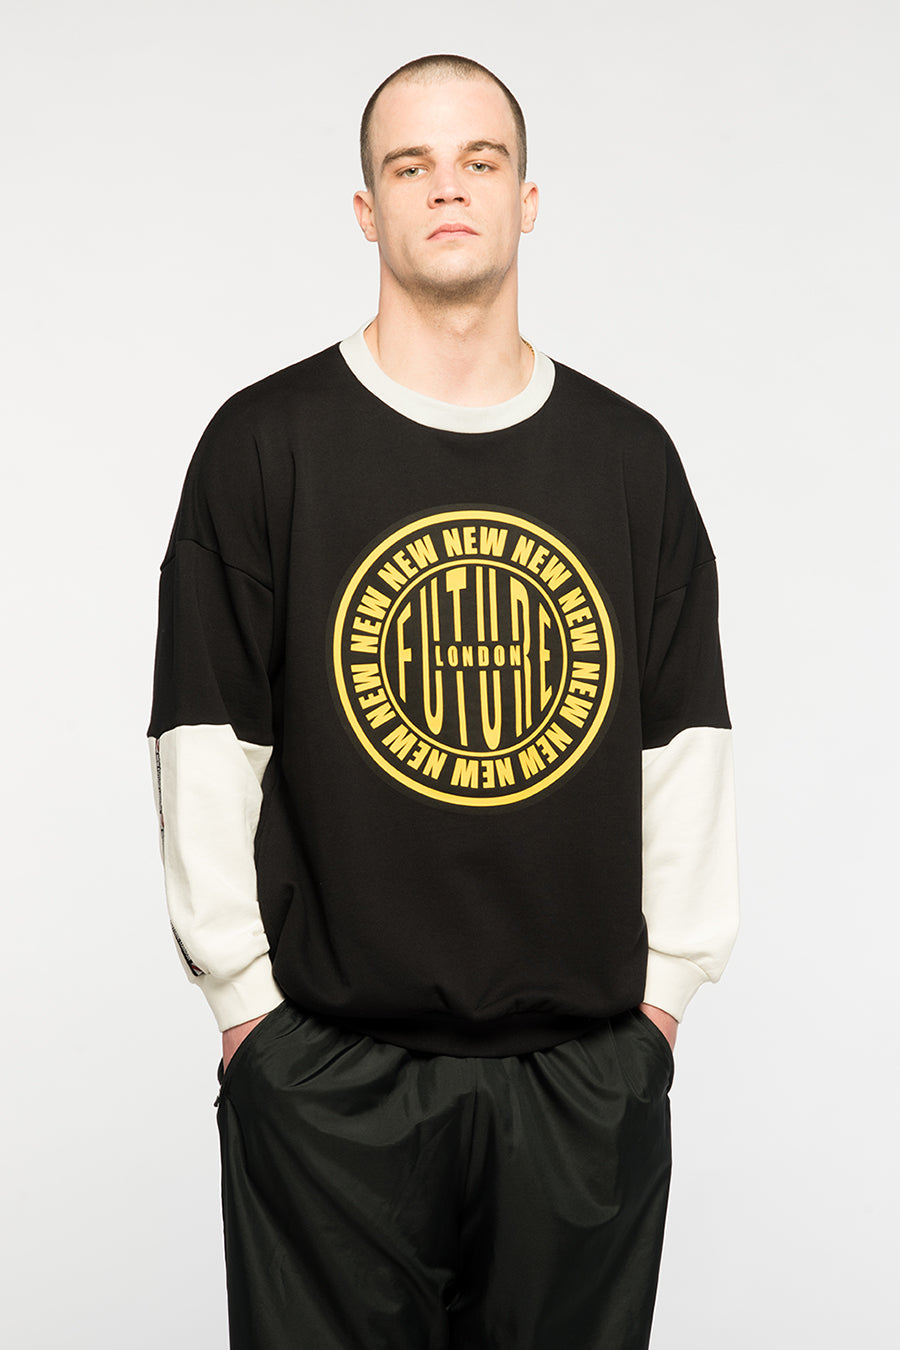 new_future_london_stamp_sweat_blk_yellow_3-1.jpg